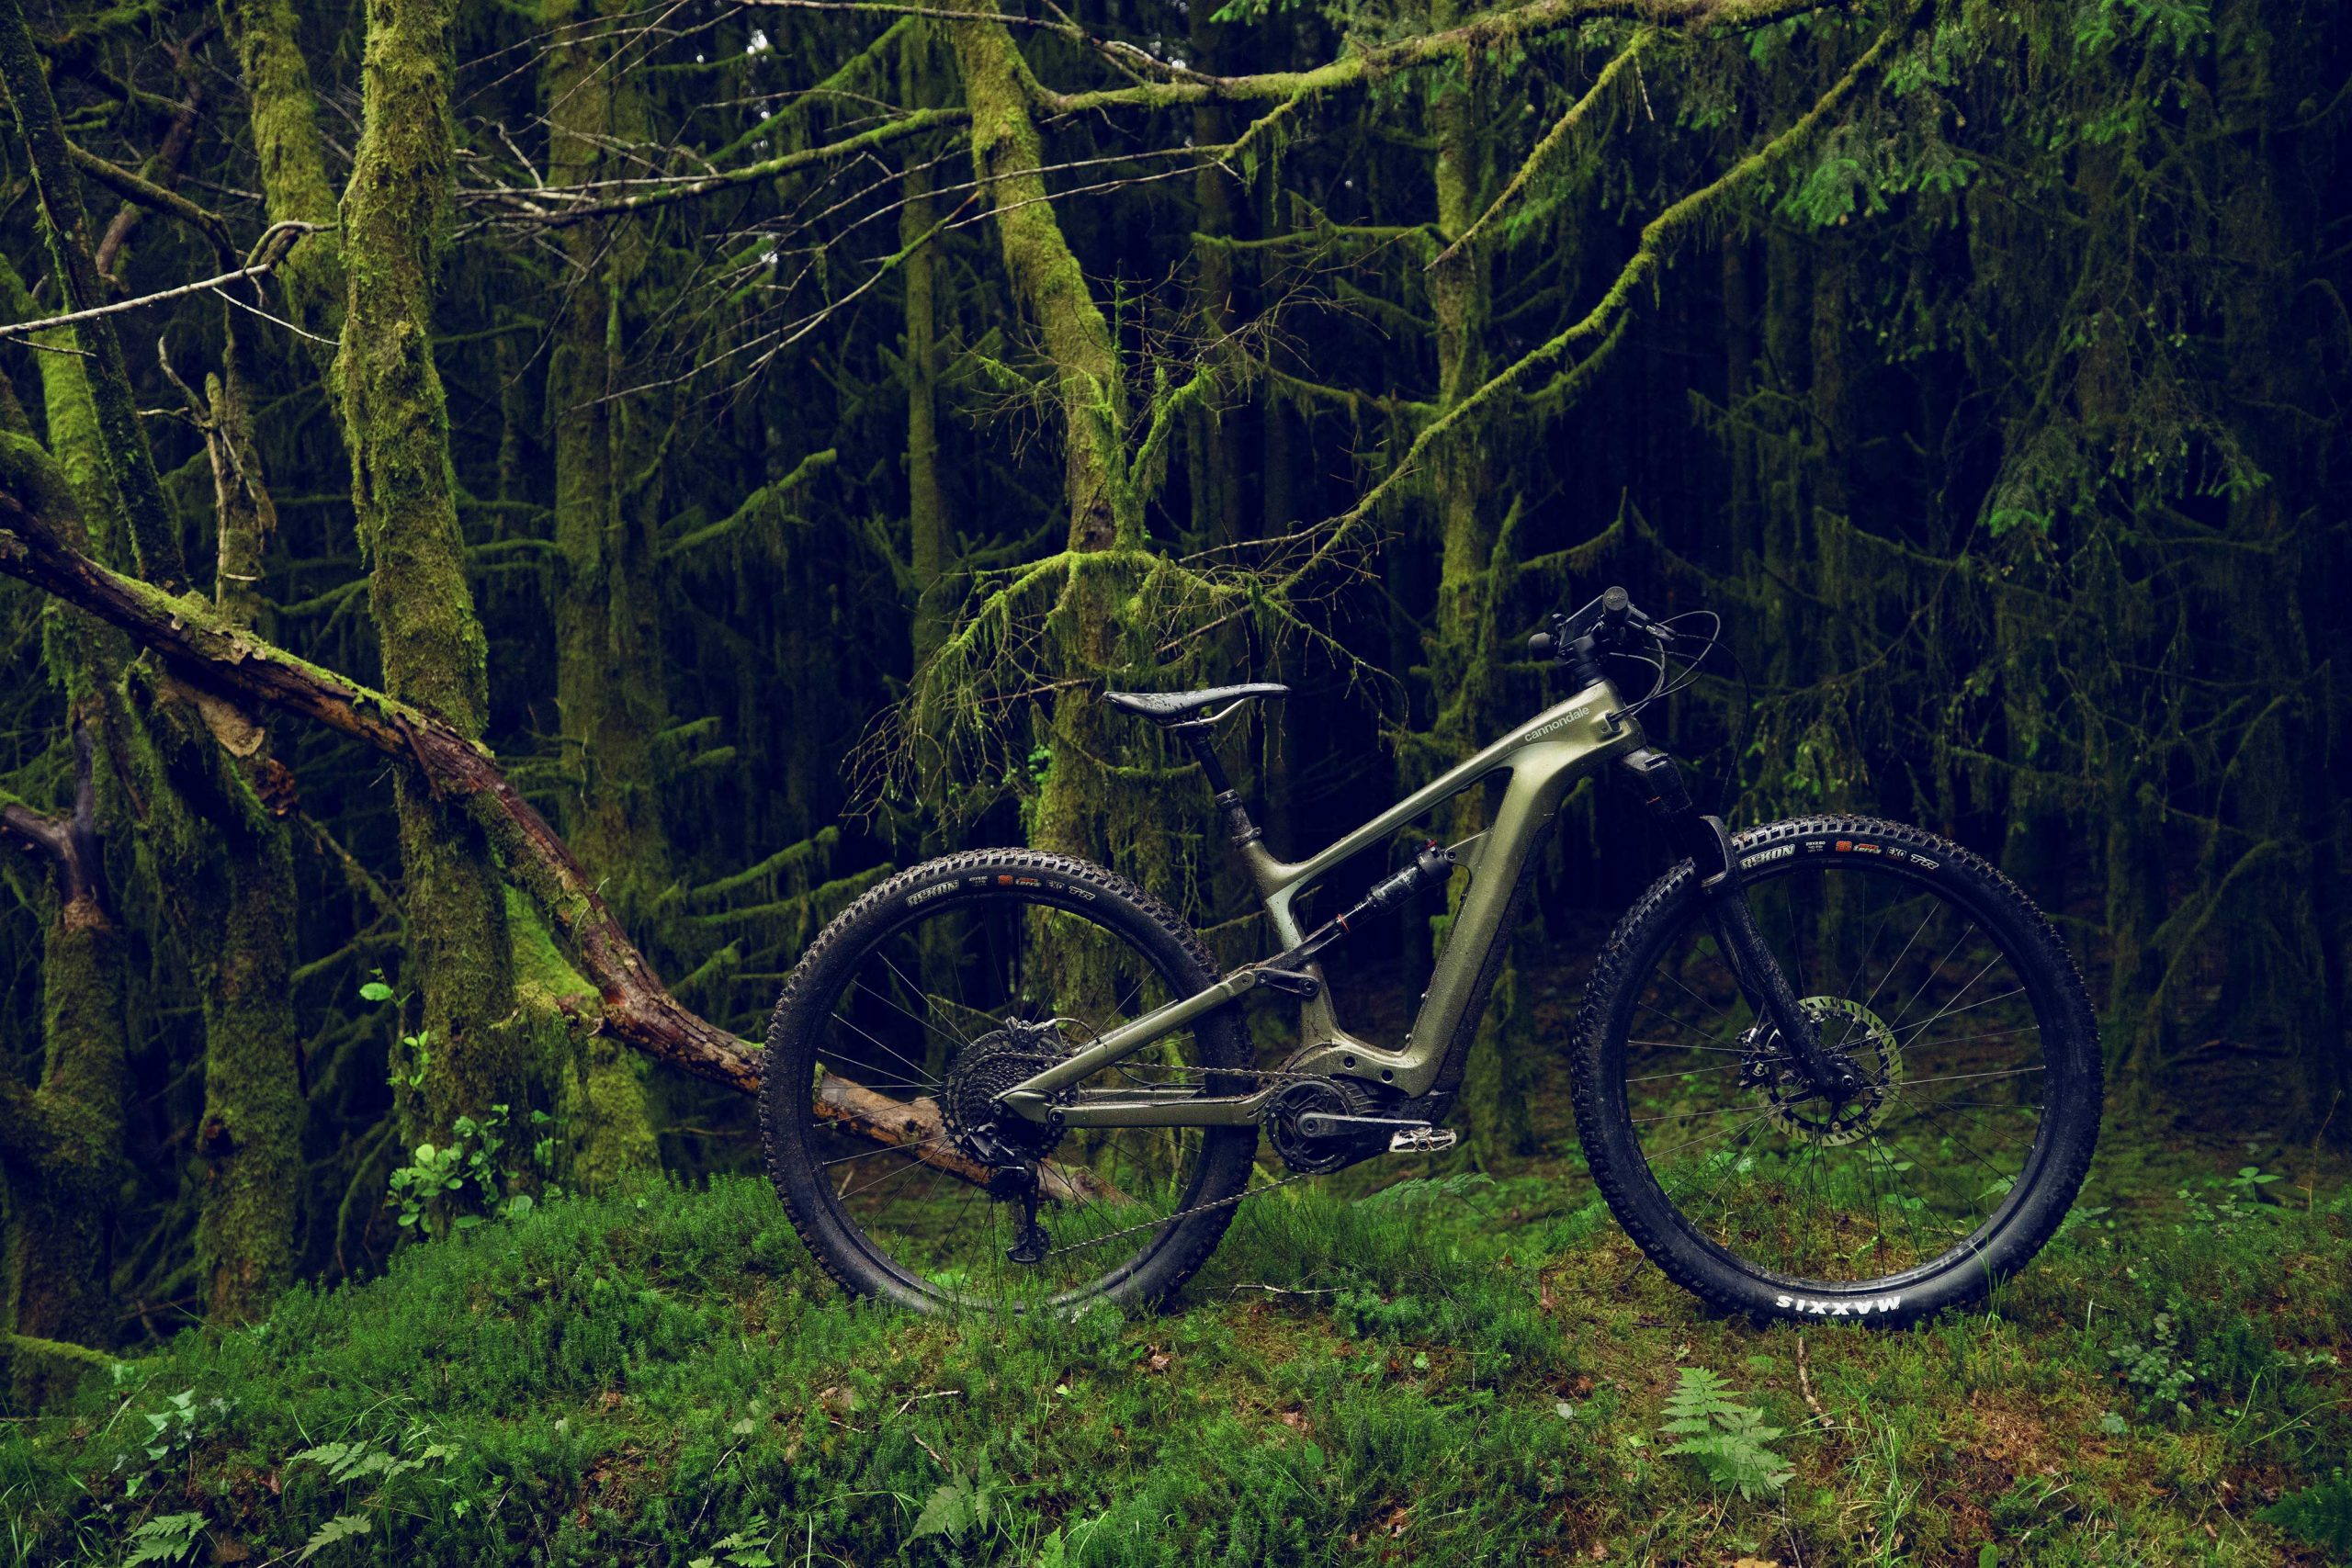 Bike standing in the forest